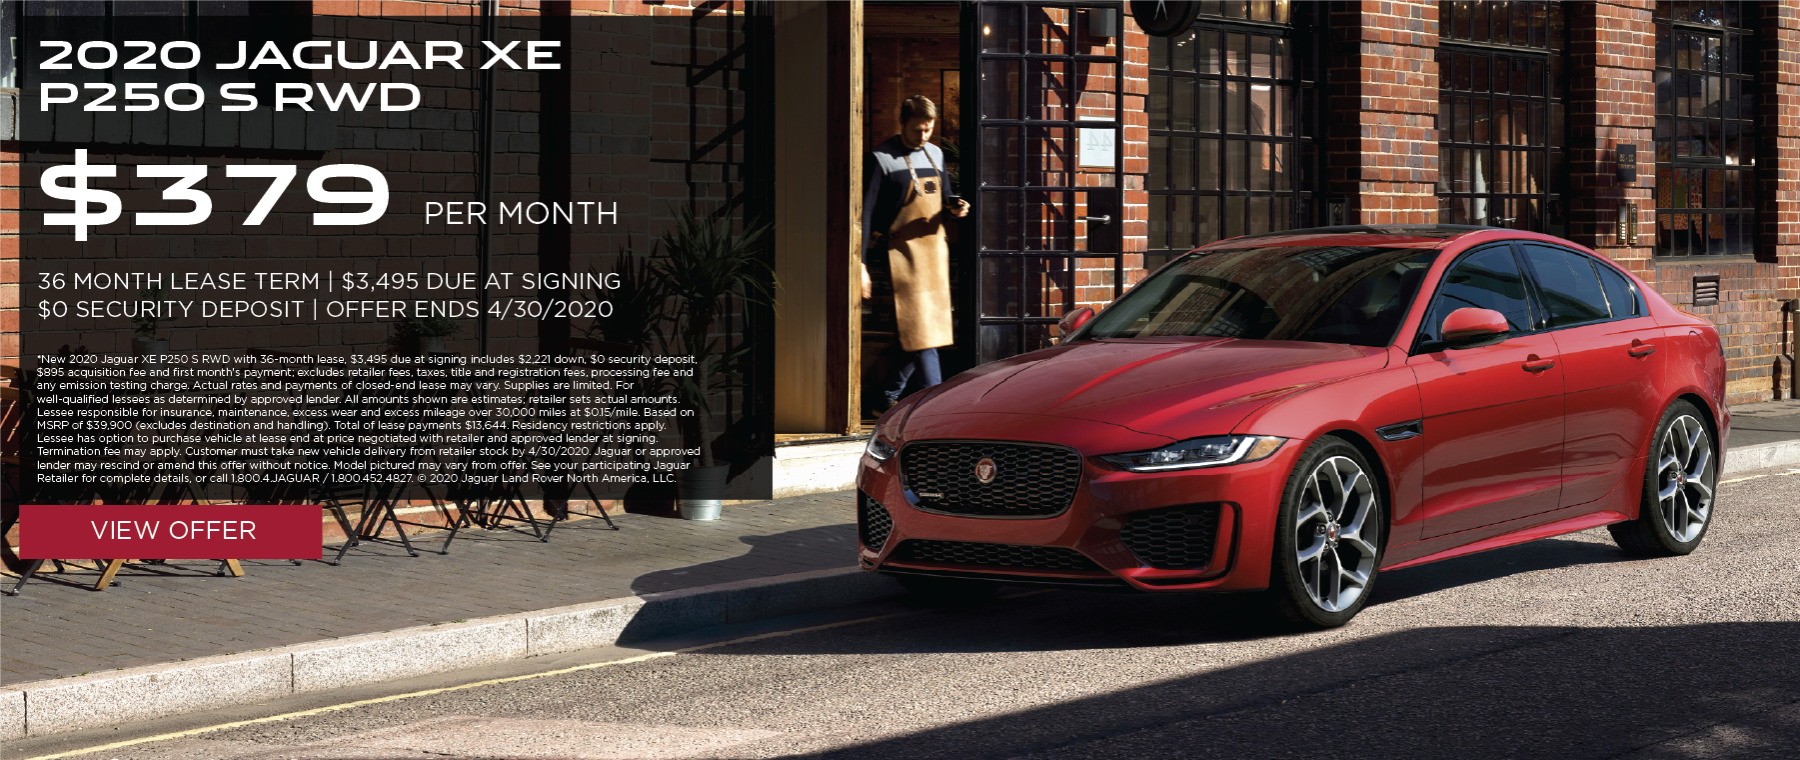 2020 JAGUAR XE P250 S RWD. $379 PER MONTH. 36 MONTH LEASE TERM WITH $3,495 DUE AT SIGNING. $0 SECURITY DEPOSIT. 10,000 MILES PER YEAR. OFFER ENDS 4/30/2020.